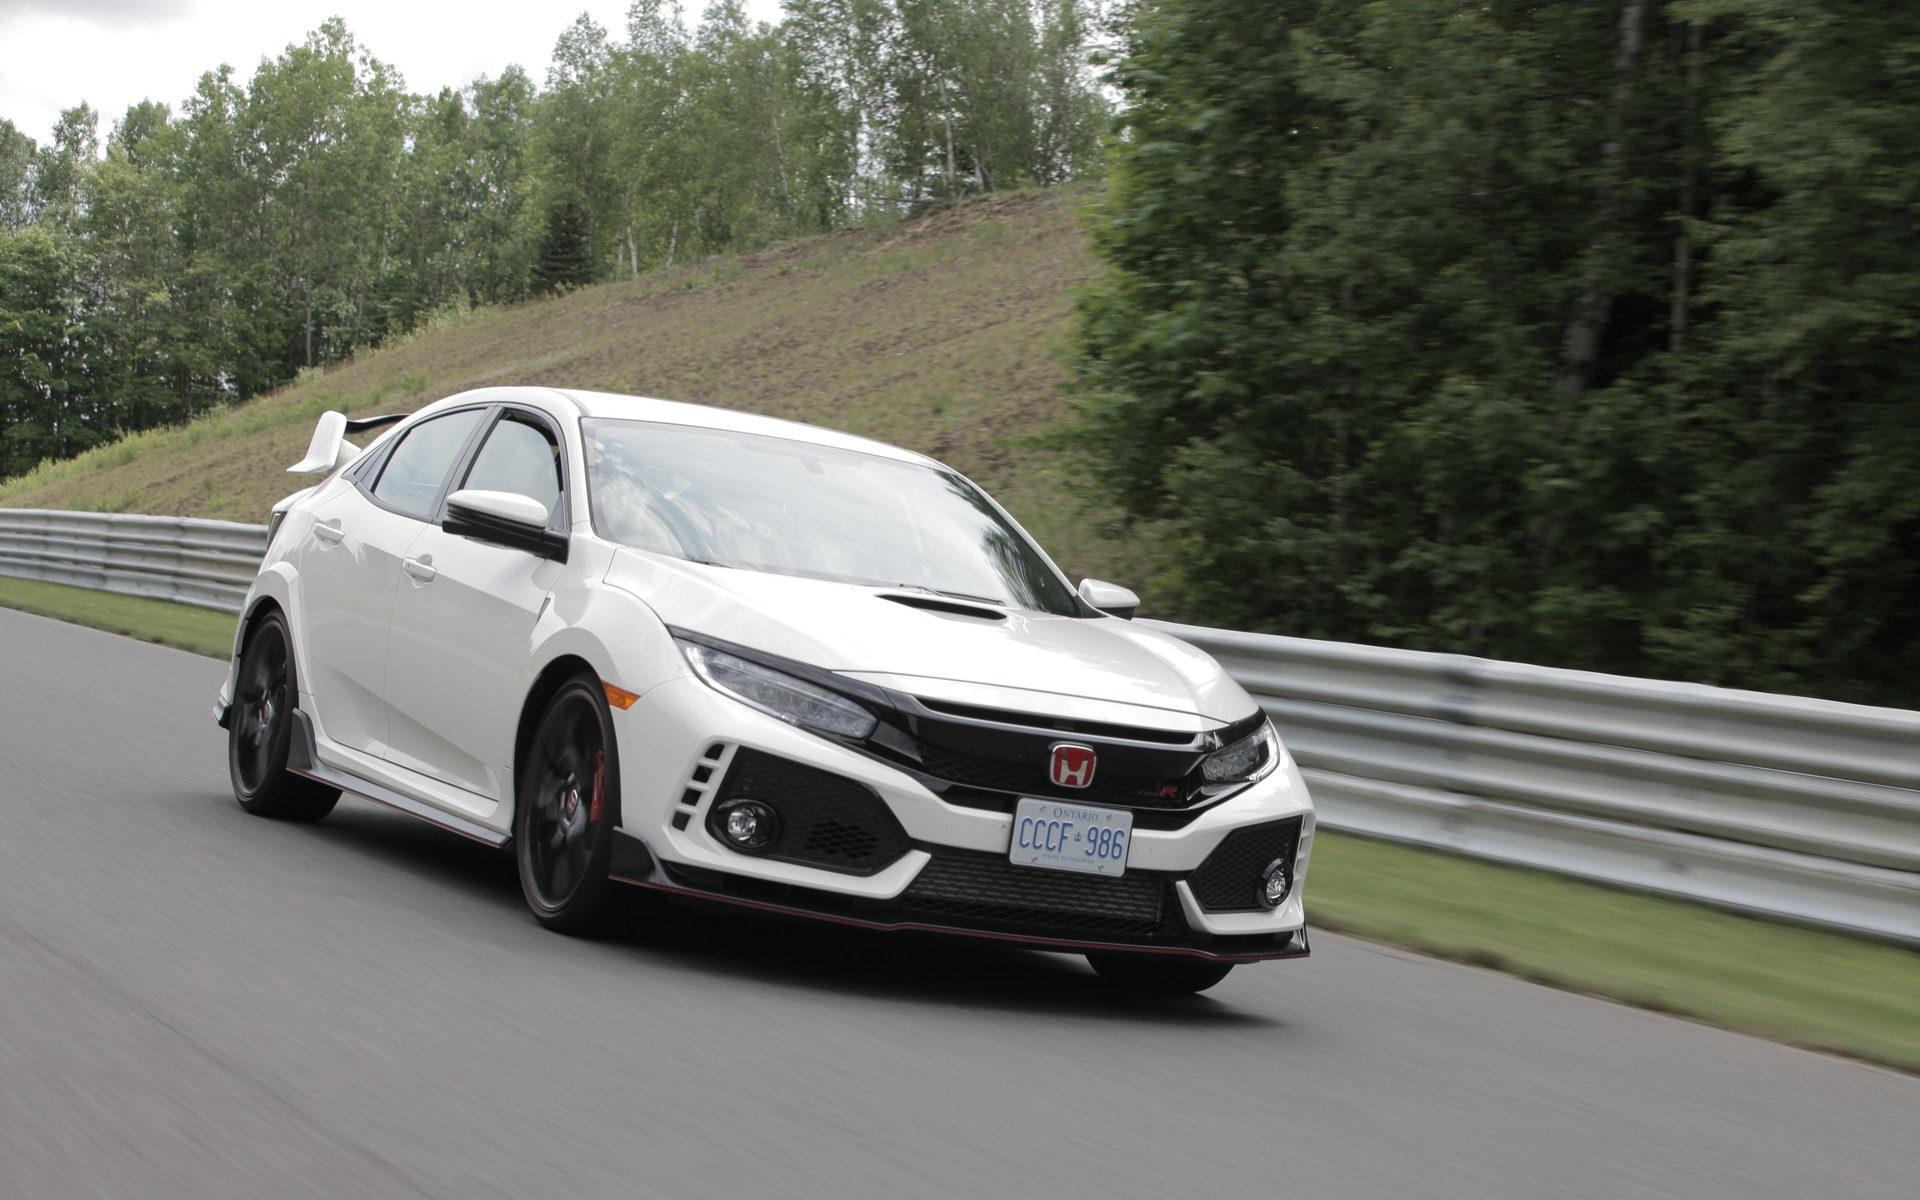 2017 Honda Civic Type R: Full Throttle at Circuit Mont Tremblant